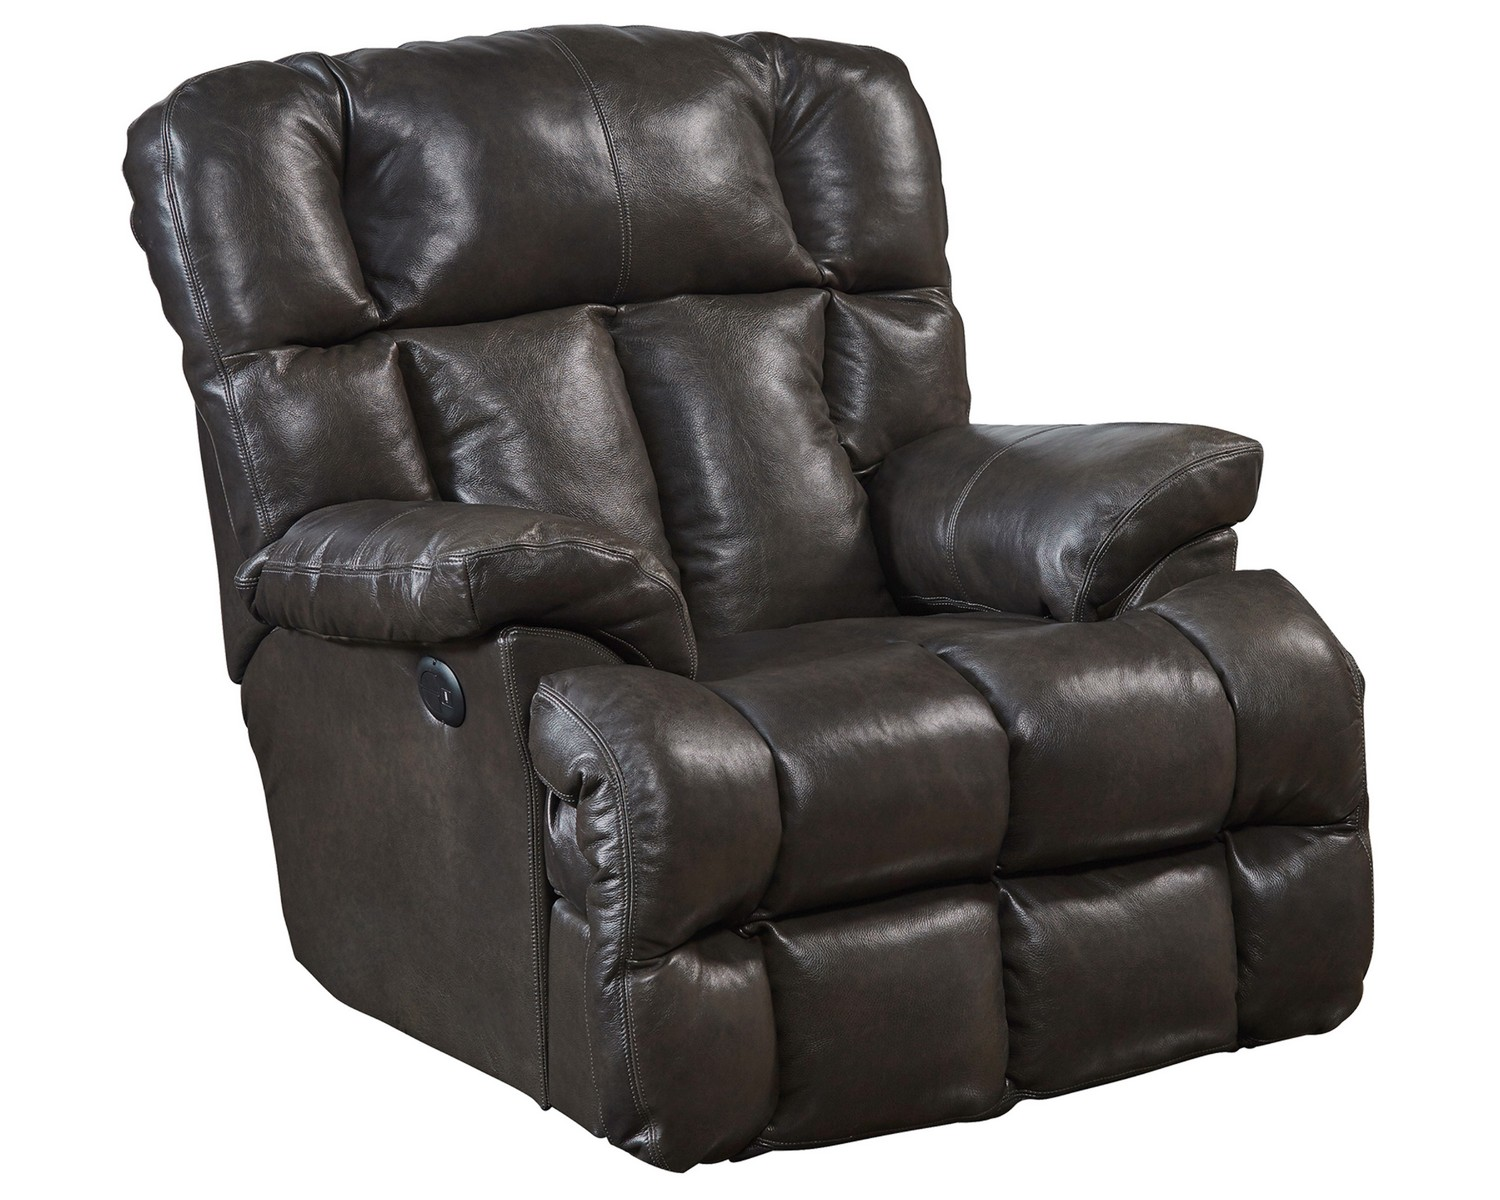 CatNapper Victor Top Grain Leather Power Lay Flat Chaise Recliner - Chocolate